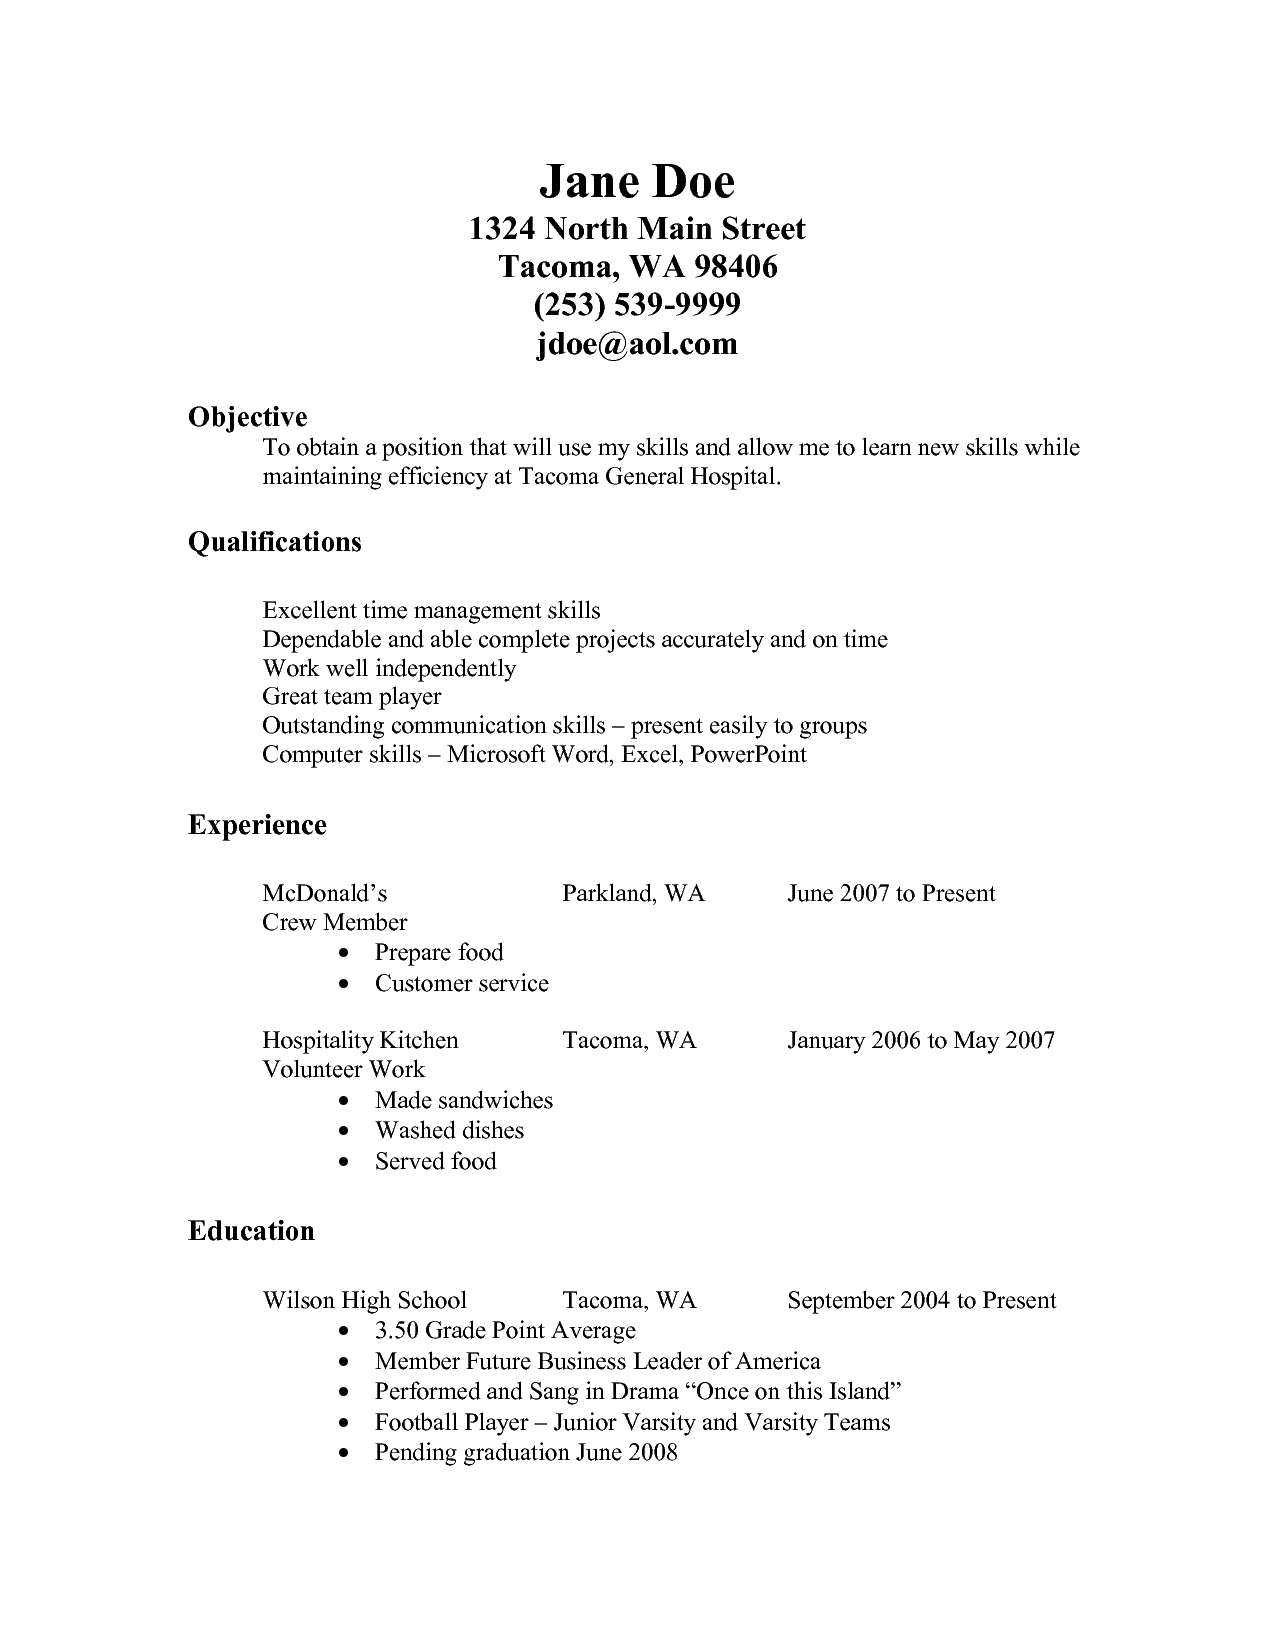 resume for fastfood fast food resume examples resume resume for fastfood fast food resume examples